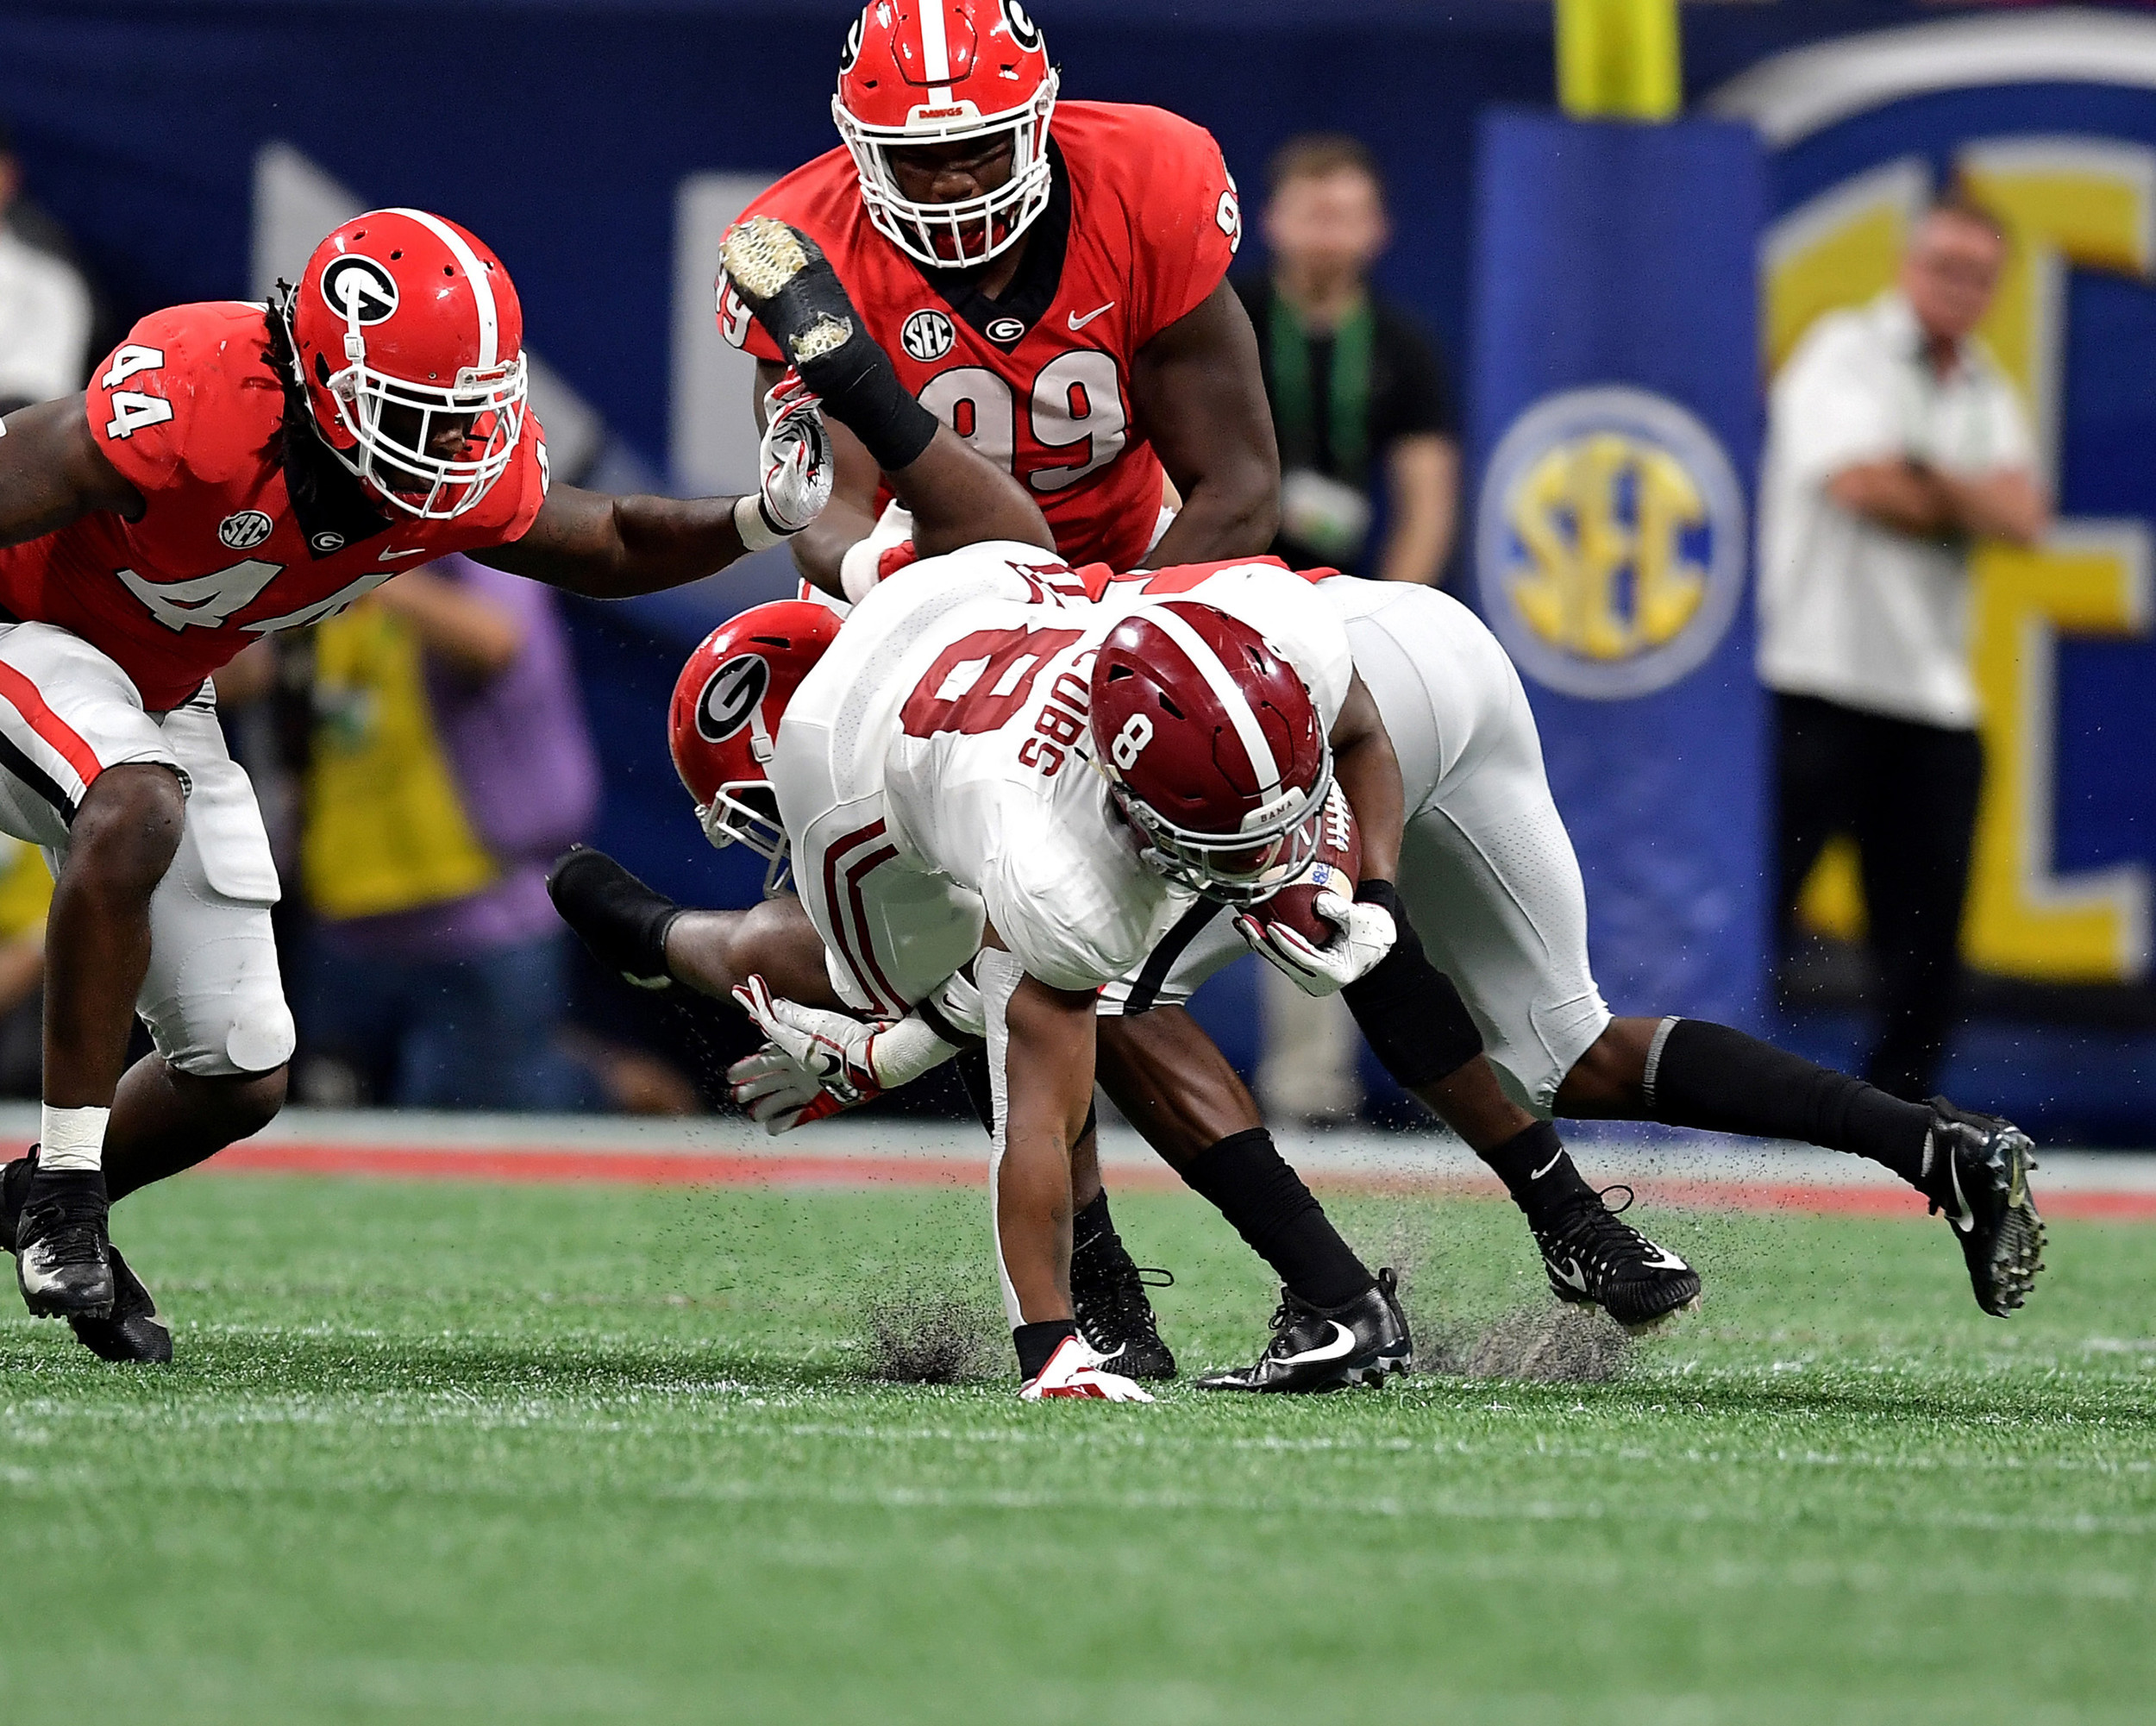 Alabama Crimson Tide running back Josh Jacobs (8) putting in the extra effort to get another yard during the second half of the 2018 SEC Championship football game against the Georgia Bulldogs at Mercedes-Benz Stadium in Atlanta, Ga., on Dec. 1, 2018. Alabama wins 35-28. (Photo by Lee Walls)